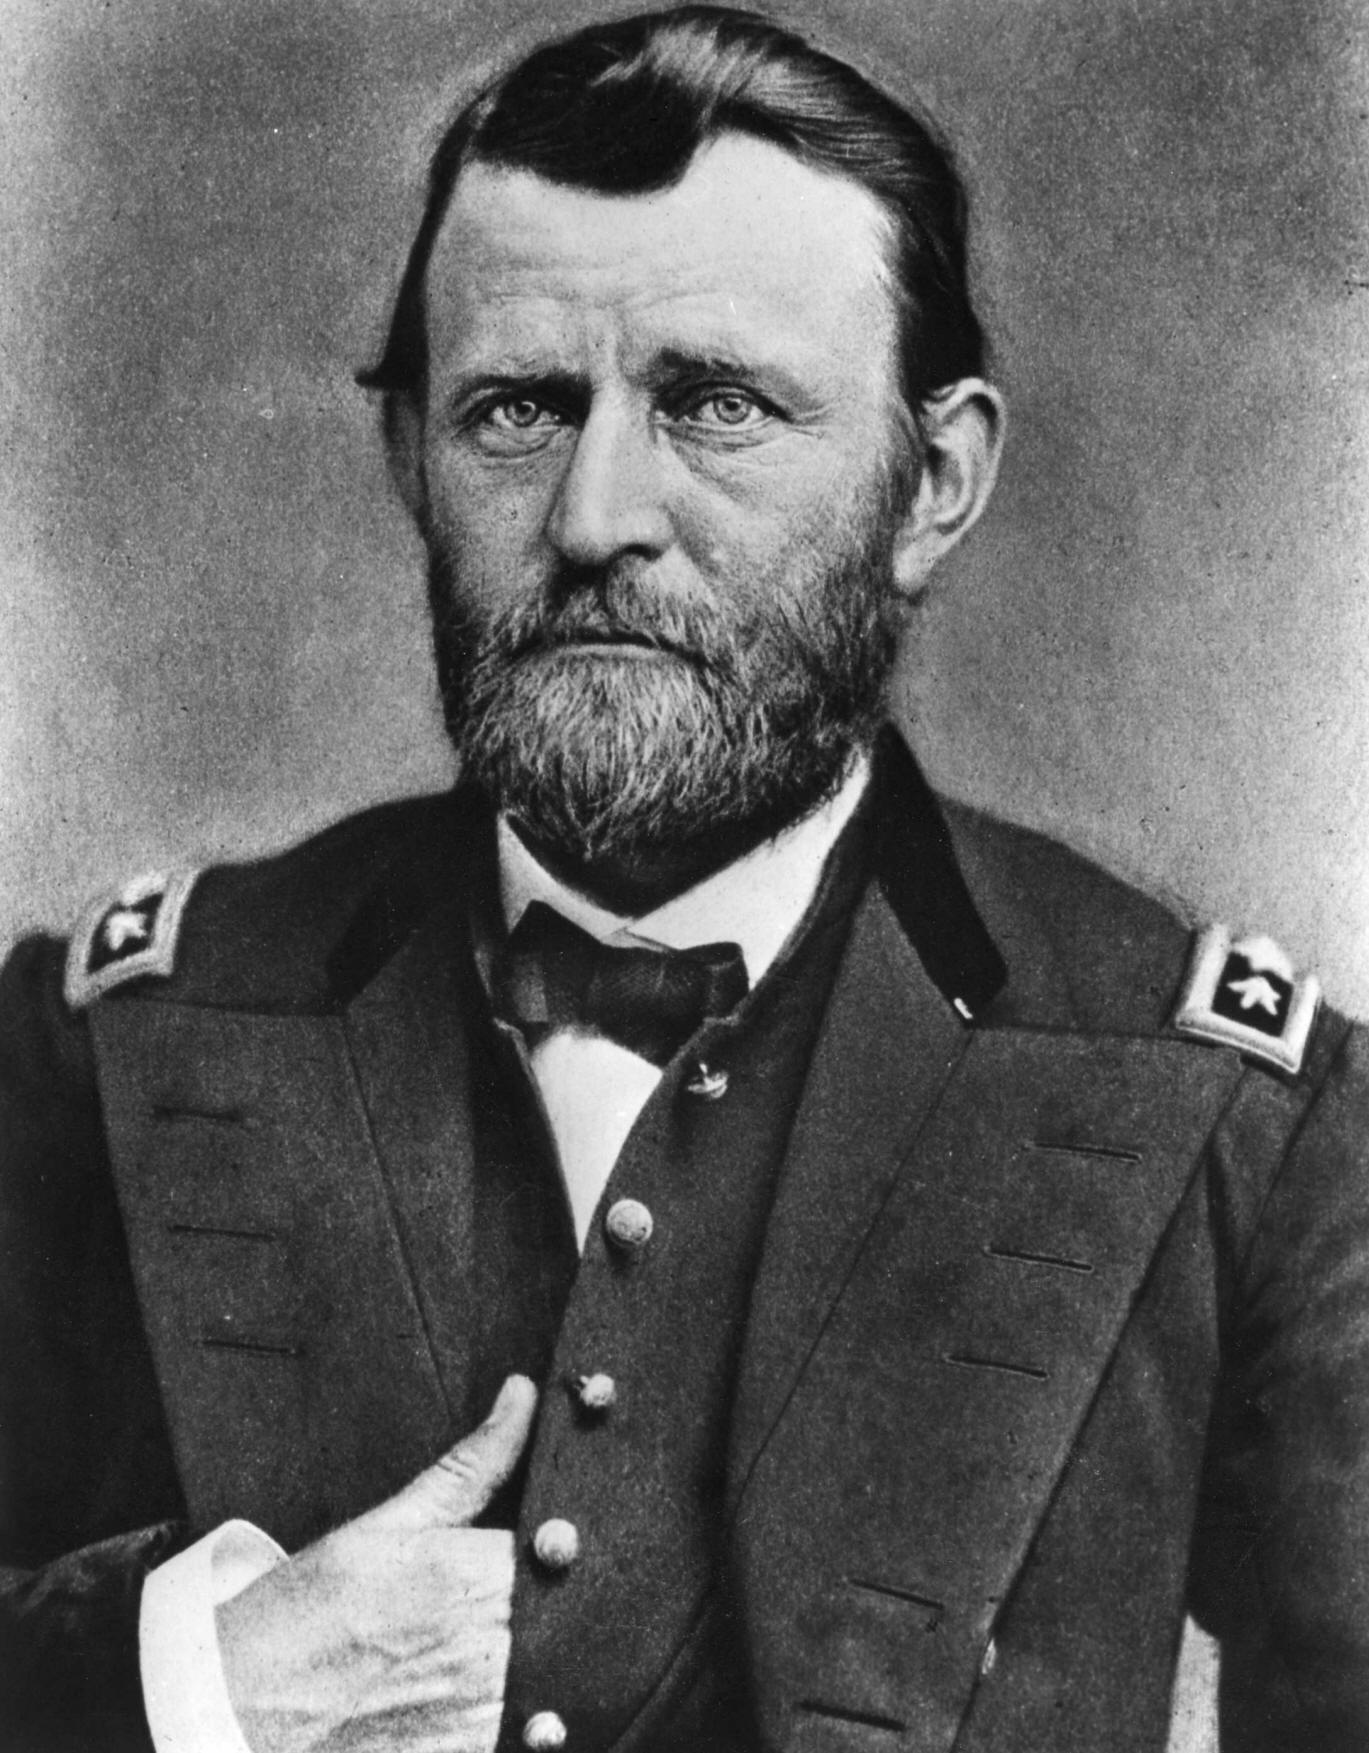 a biography of ullysses s grant Scholarly essays, speeches, photos, and other resources on ulysses s grant, the 18th us president (1869-1877), including information about the civil war, reconstruction, and writing his memoirs.